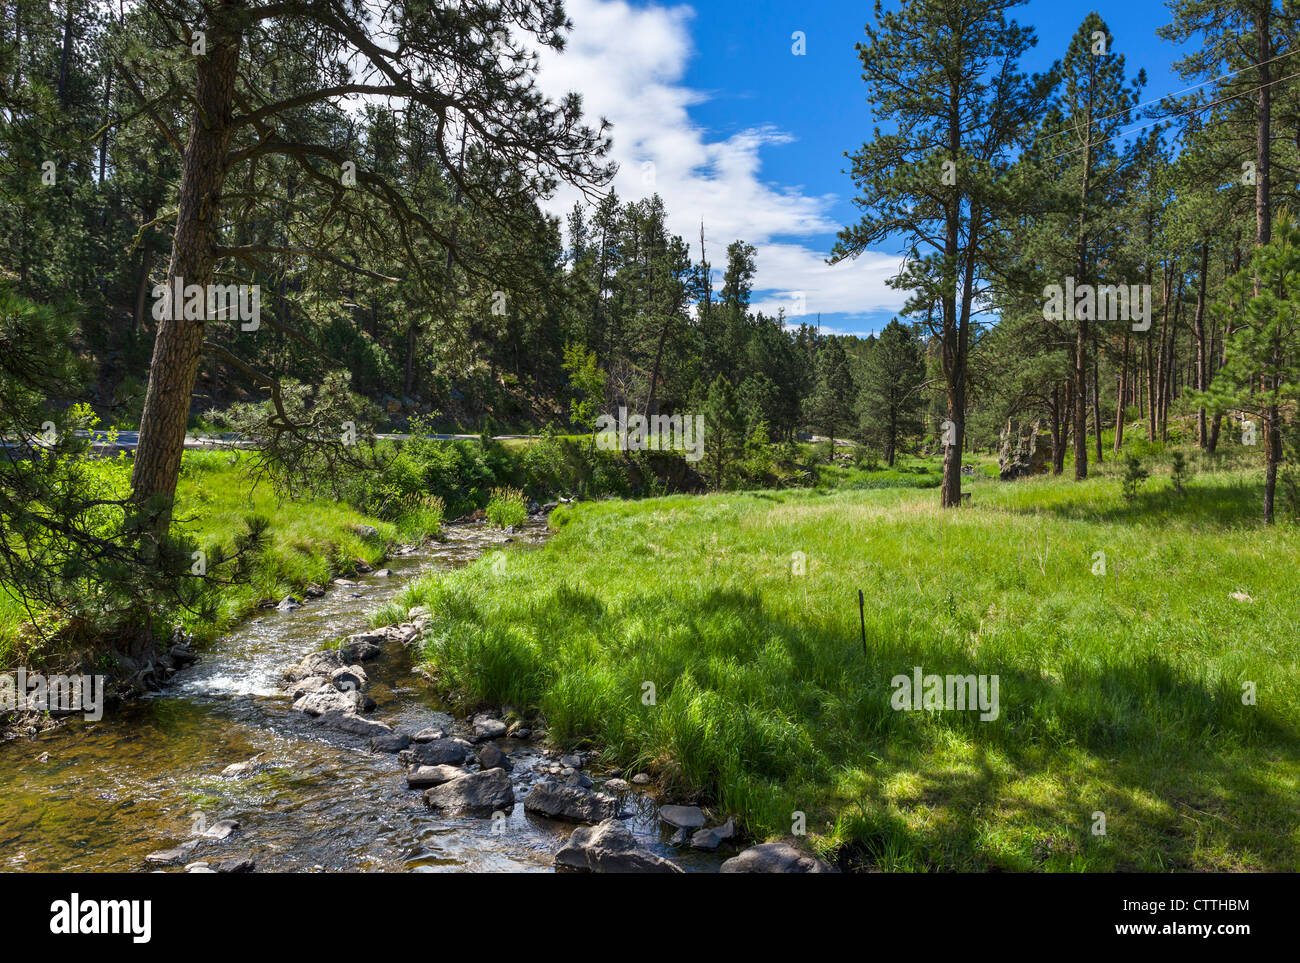 Stream at Blue Bell picnic area alongside the Route 87 in Custer State Park, Black Hills, South Dakota, USA - Stock Image